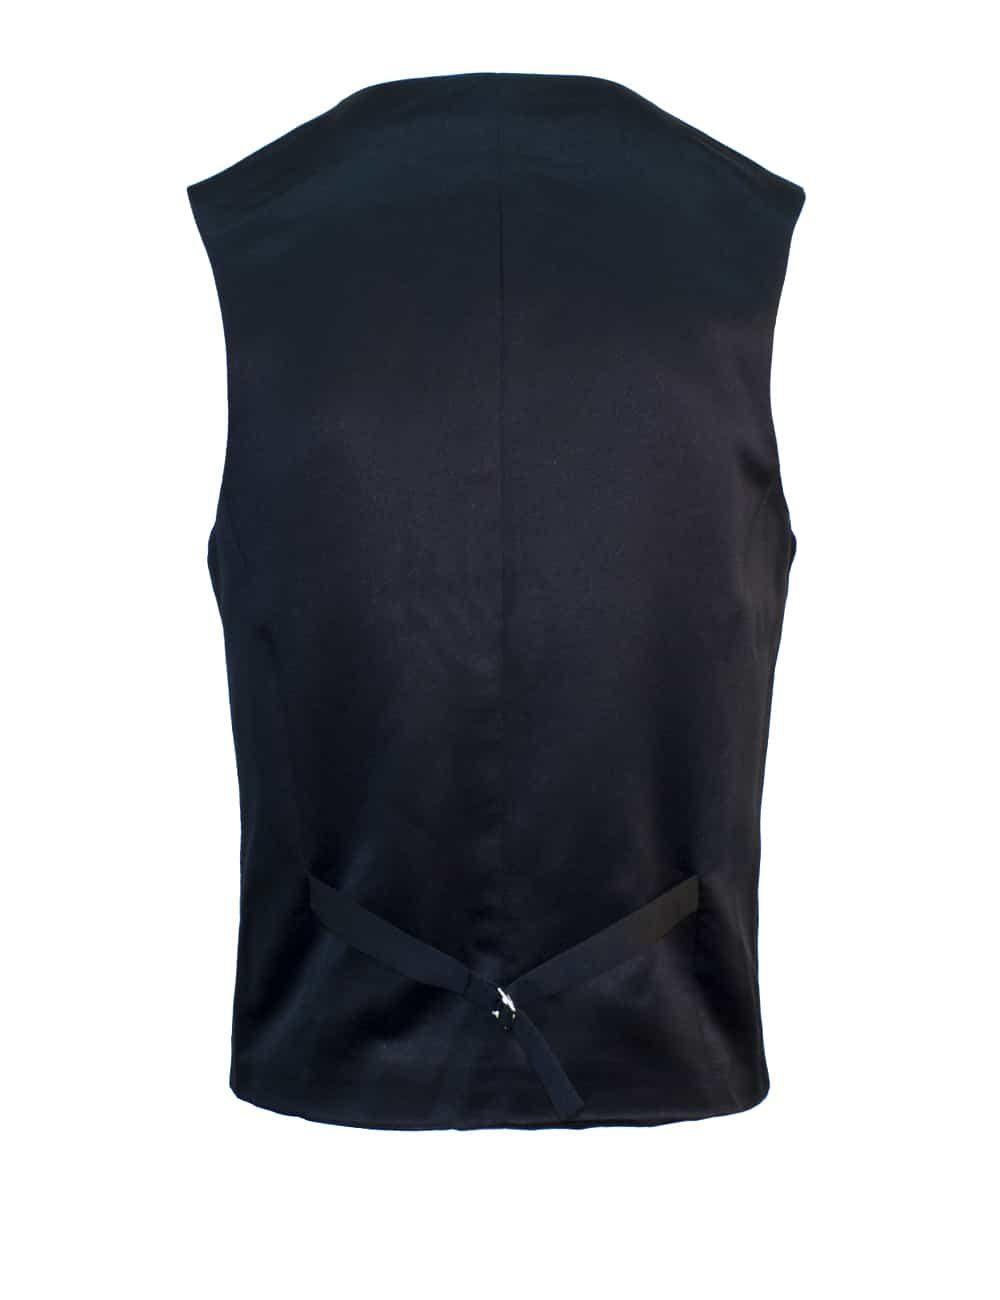 Tailored Fit Black Twill Single Breasted Vest V1V2.2